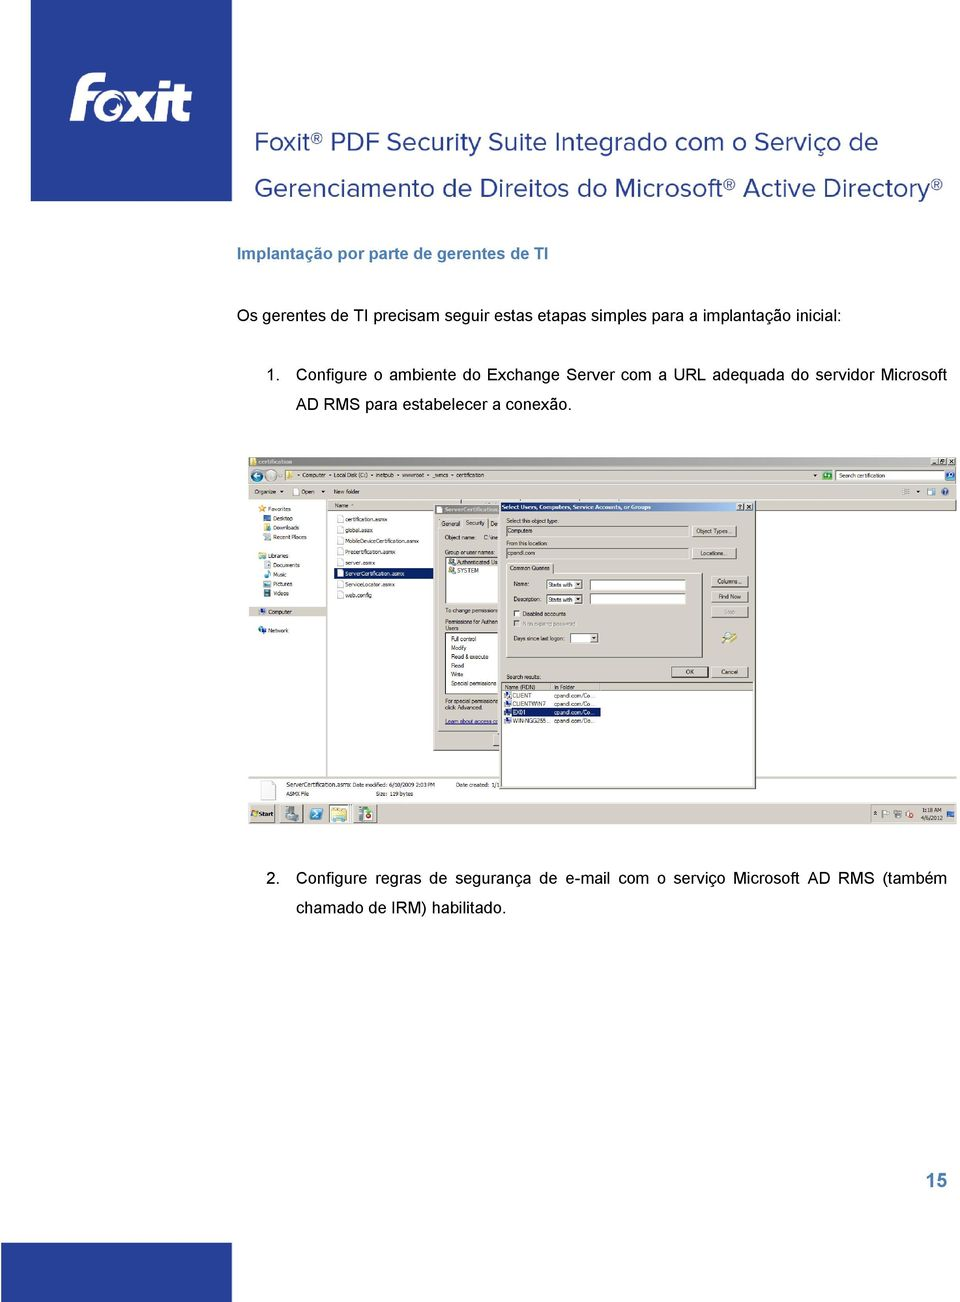 Configure o ambiente do Exchange Server com a URL adequada do servidor Microsoft AD RMS